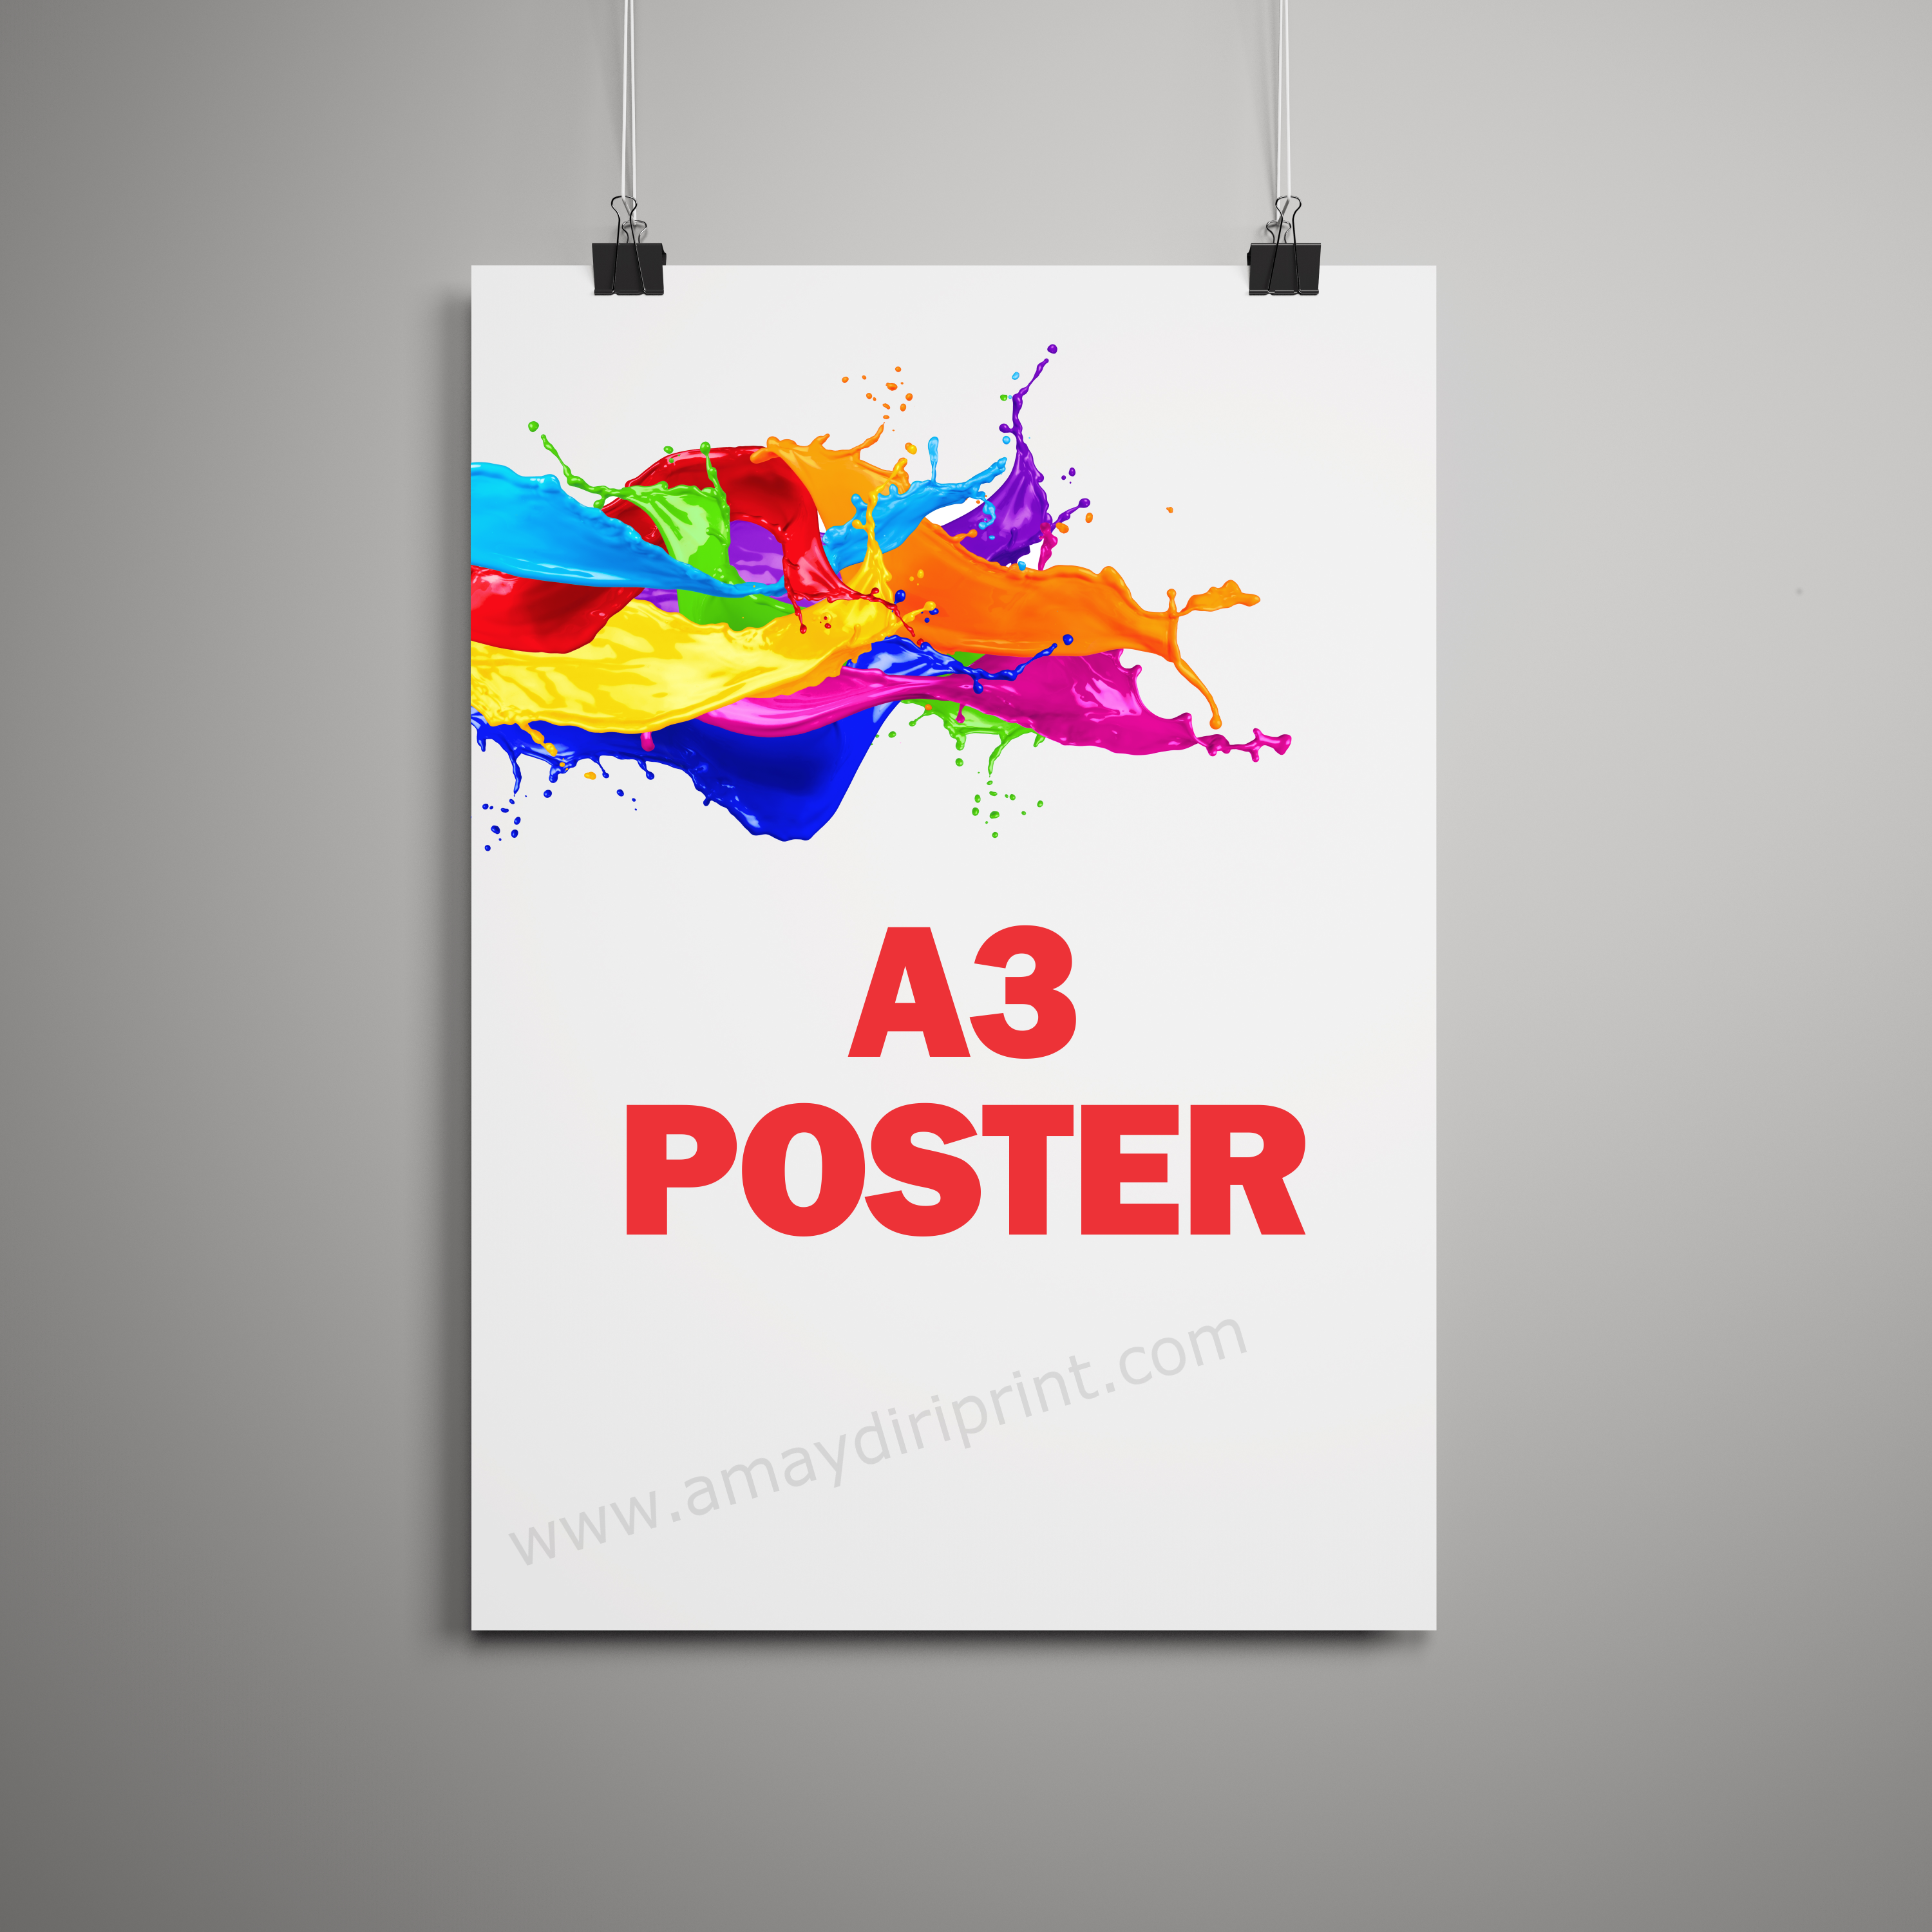 A3 Poster 11 7 X 16 5 Printers In Lagos Print